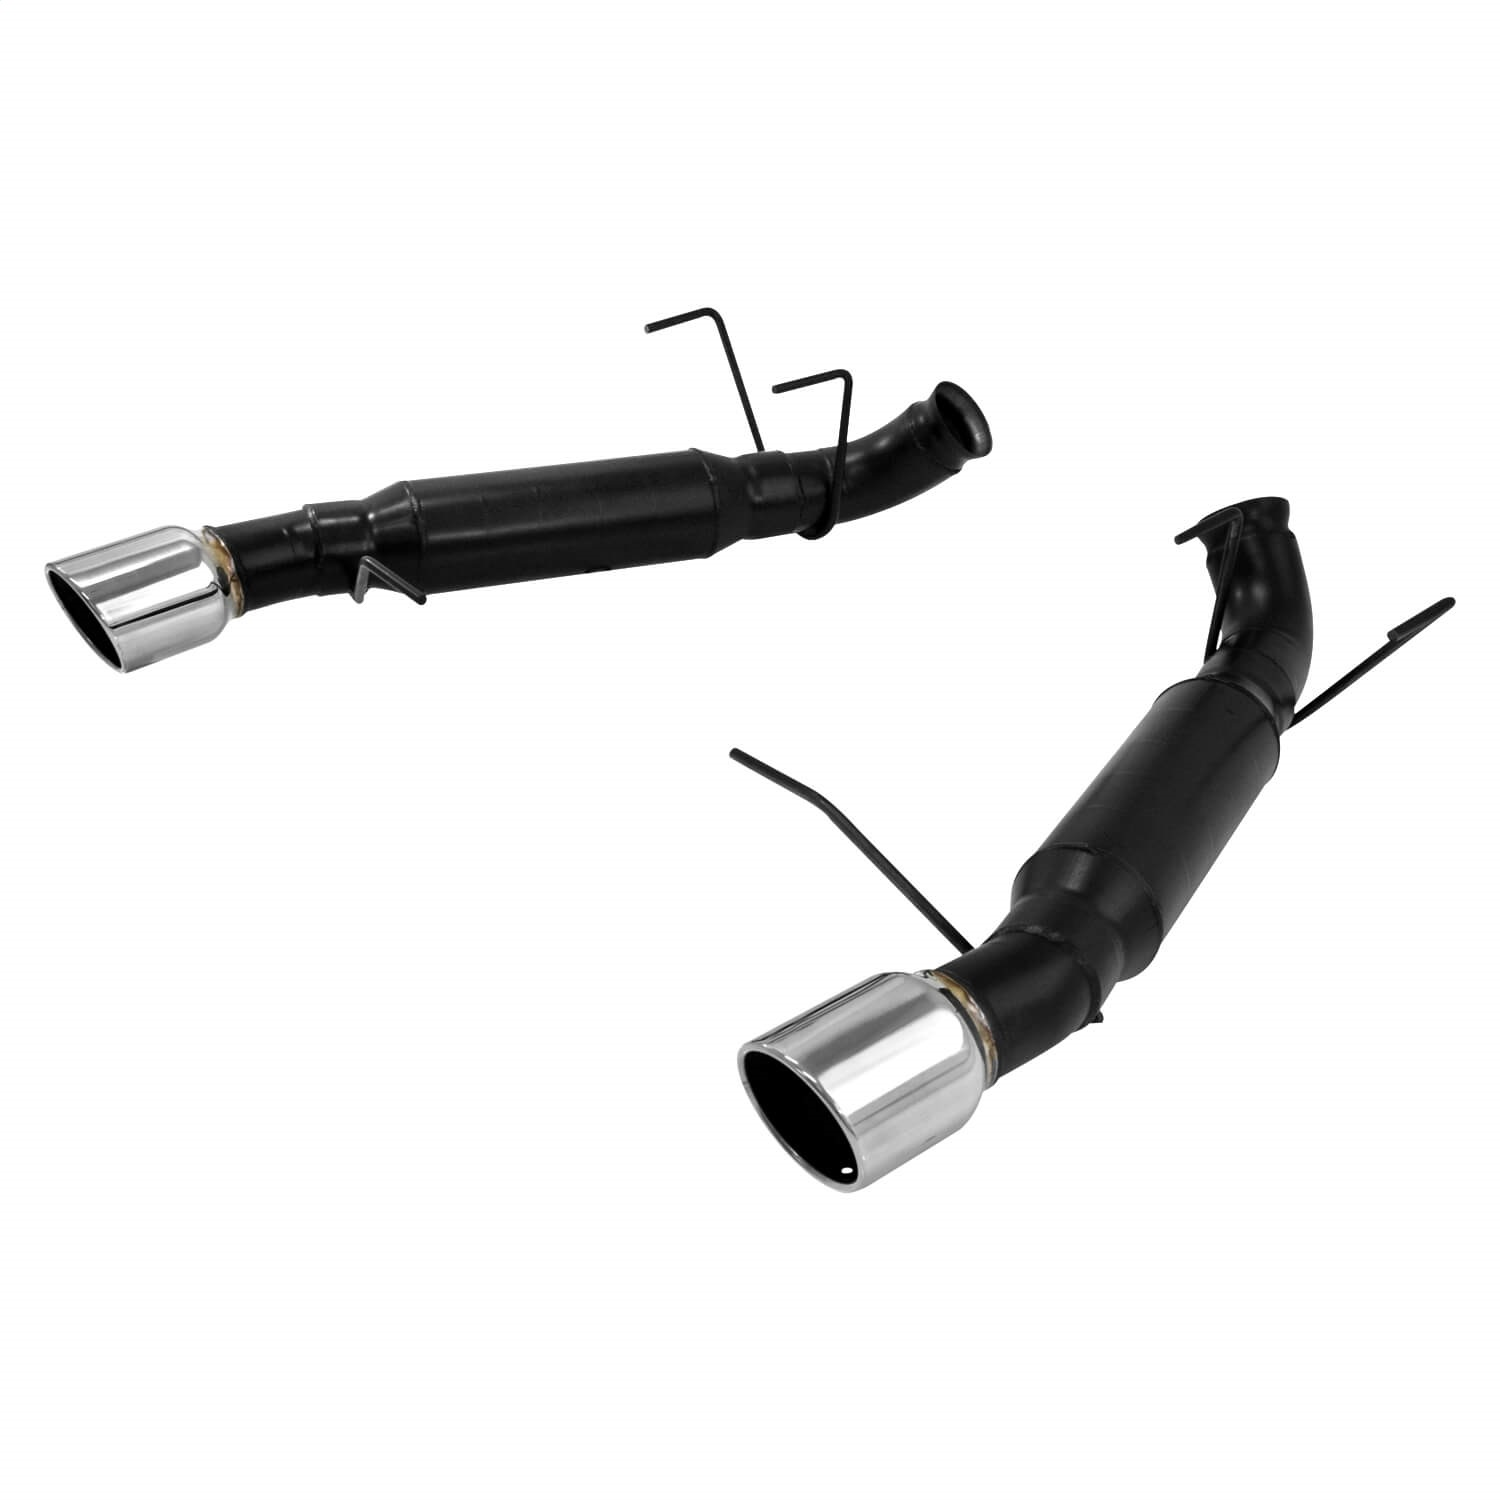 Flowmaster 817592 Outlaw Series™ Axle Back Exhaust System